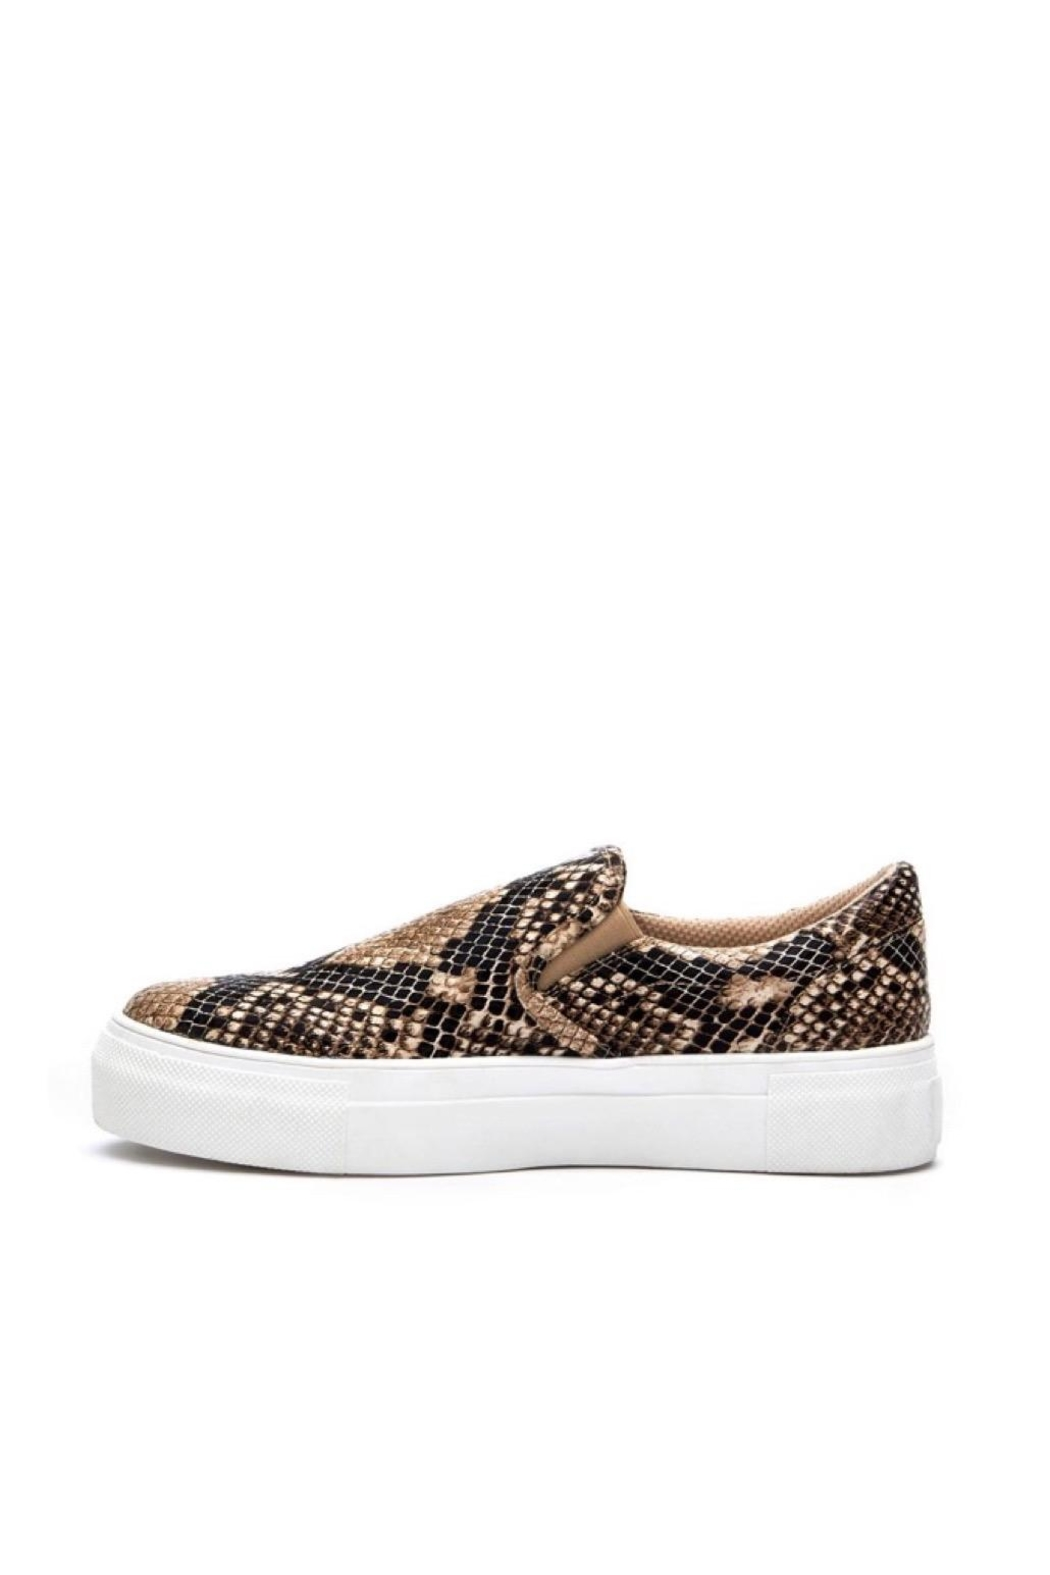 Coconuts by Matisse Snake Sneaker - Main Image